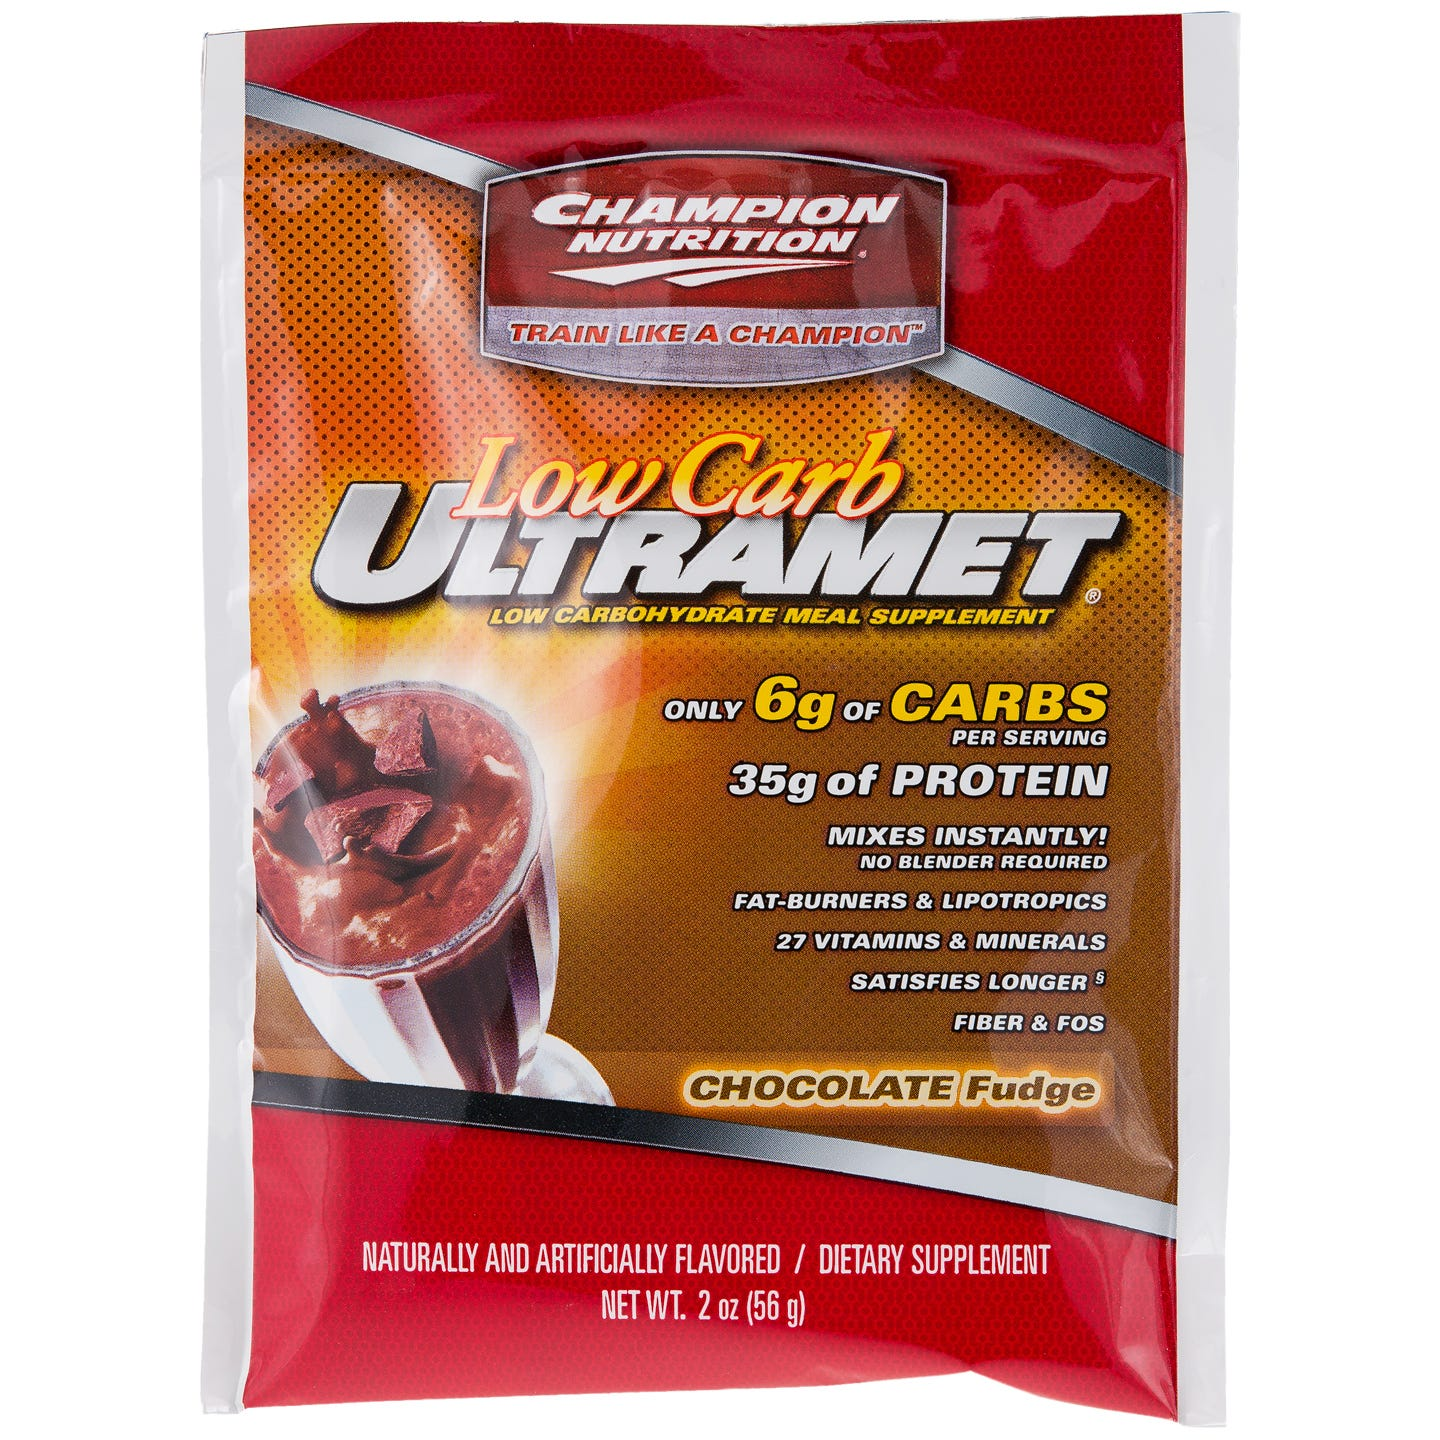 Champion Nutrition Low Carb UltraMet - Chocolate Fudge